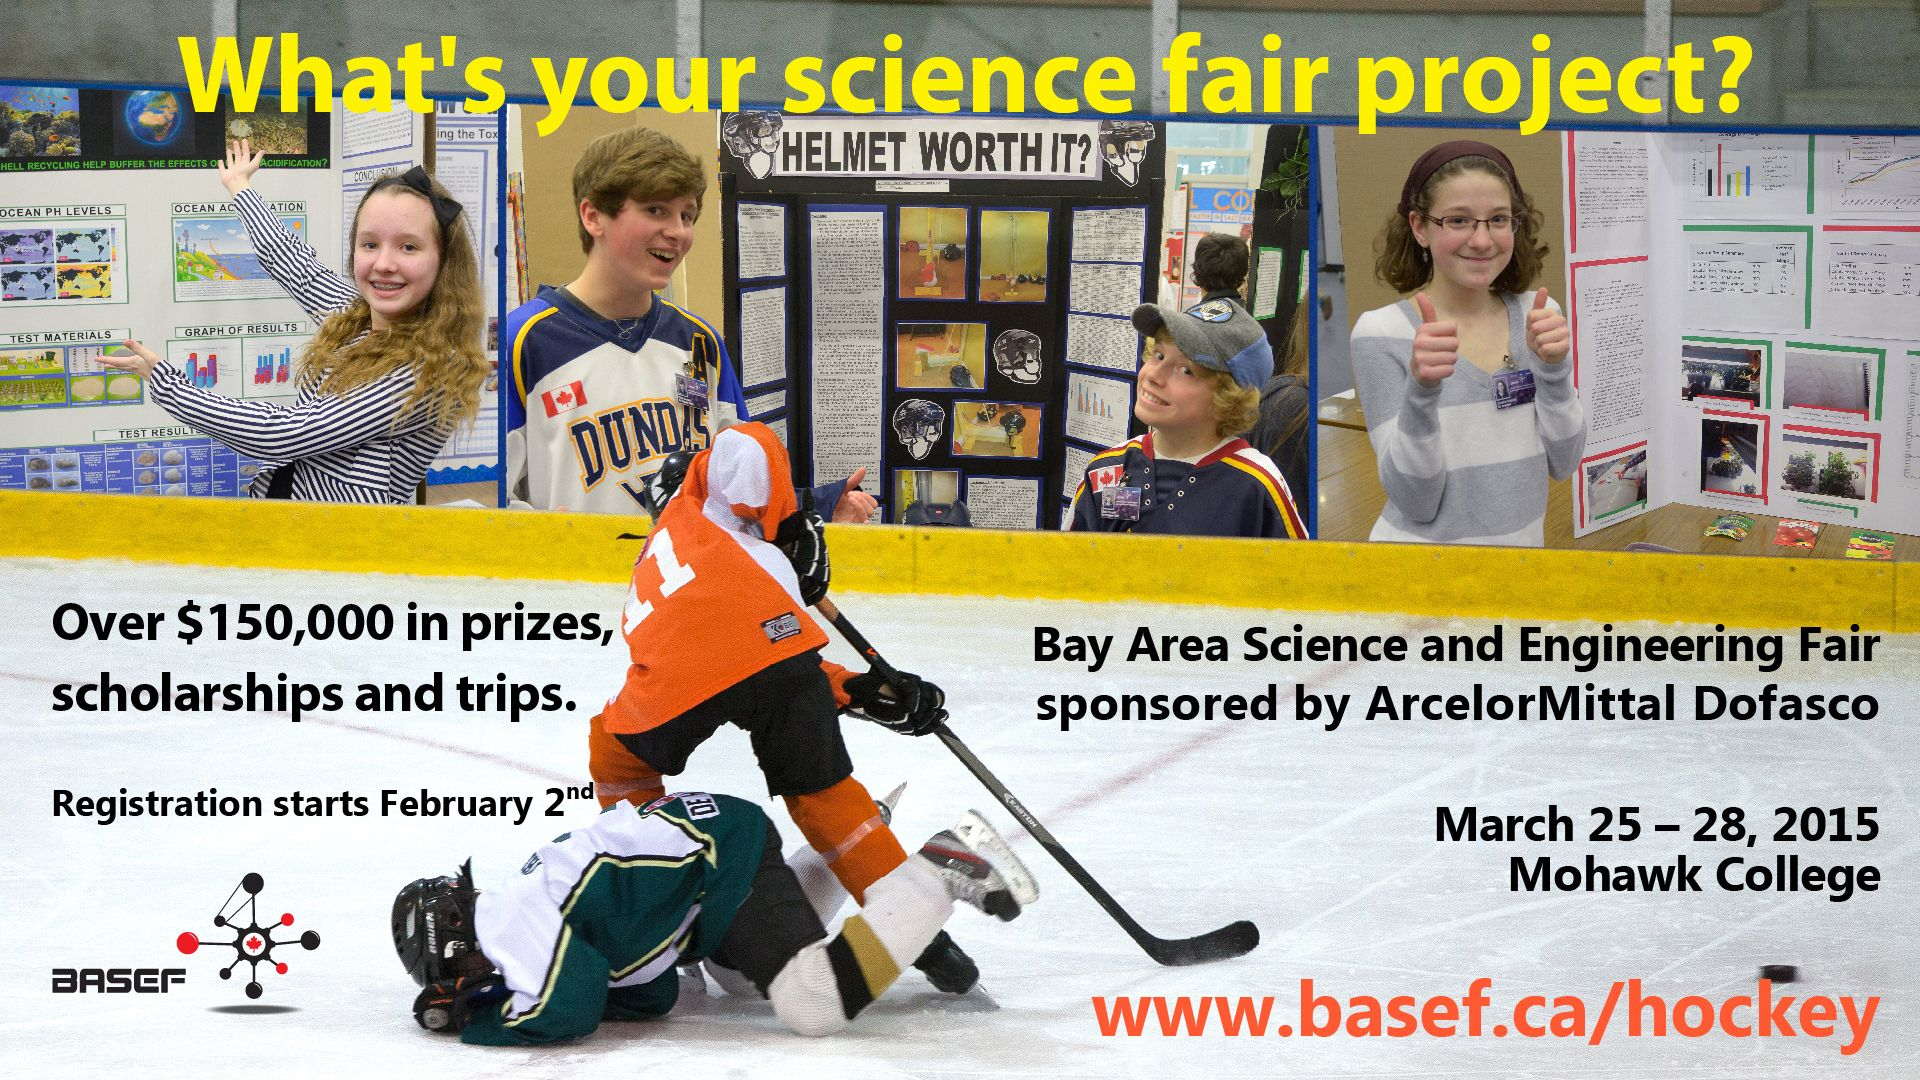 A Science Fair Project Can Be About Hockey Science Fair Projects Science Fair Fair Projects